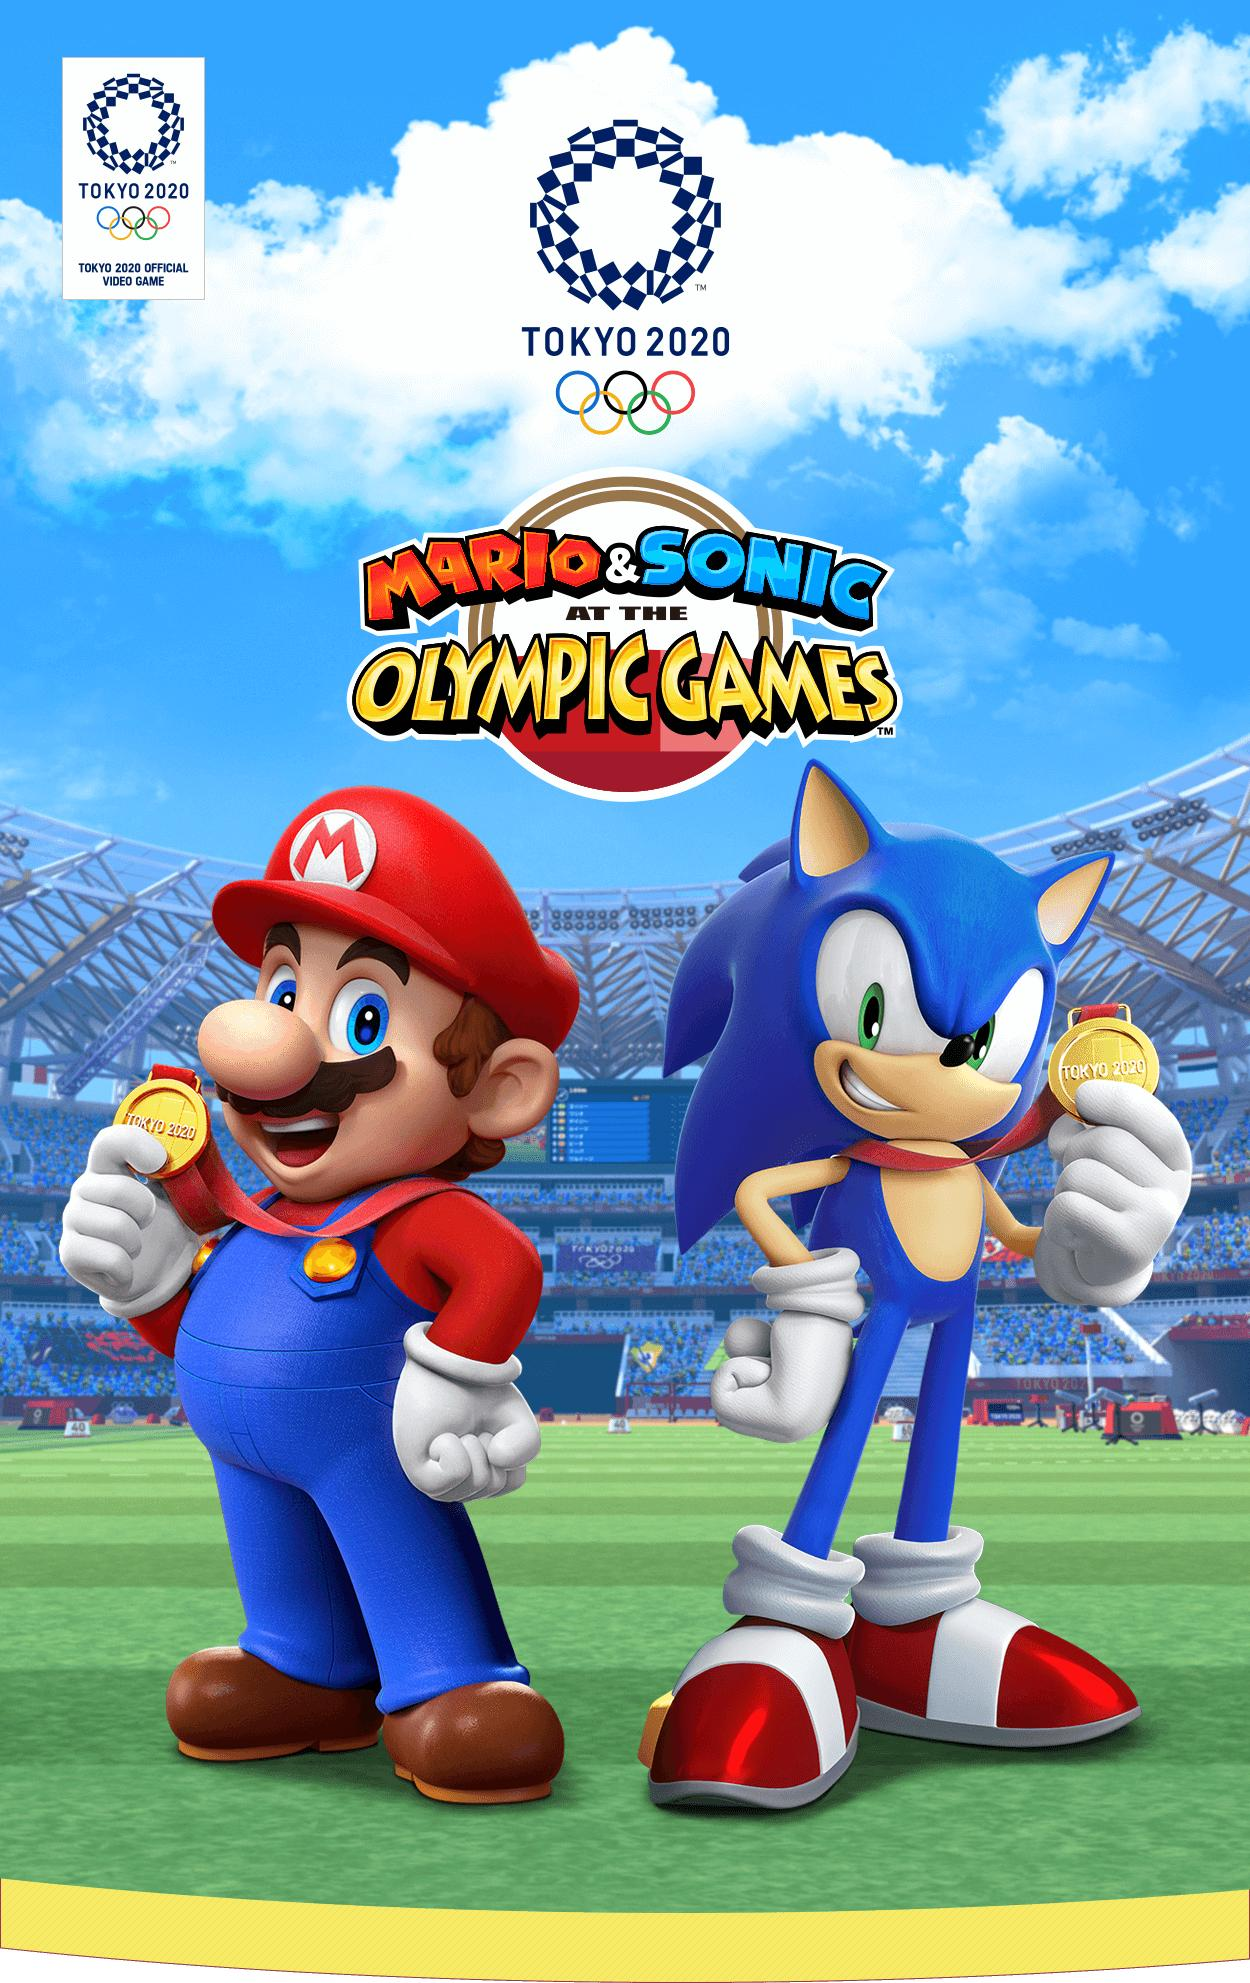 mario & sonic at the tokyo 2020 olympic games